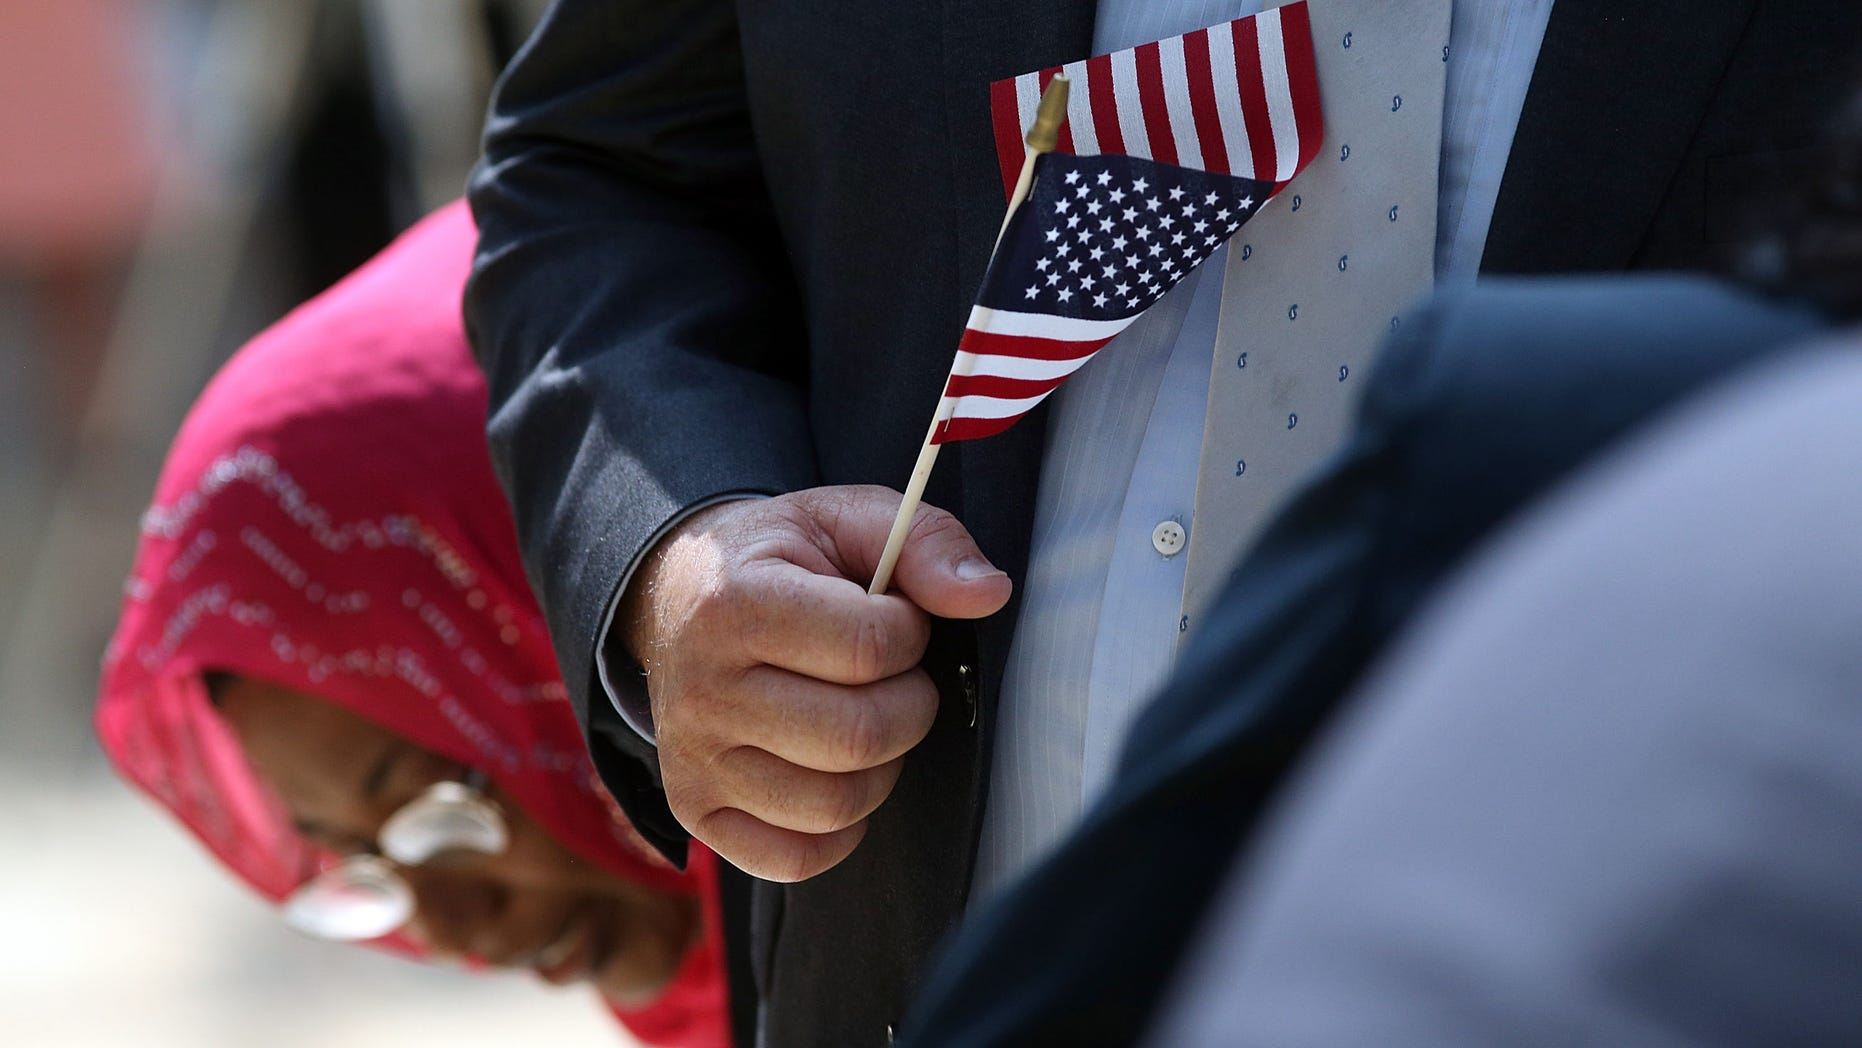 NEW YORK, NY - JULY 22: A man holds an American Flag before taking the Oath of Allegiance during a special naturalization ceremony at the Metropolitan Museum of Art on July 22, 2014 in New York City. Over fifty people representing countries from Albania to Burundi took part in the morning ceremony at the American Wing of the museum. The Oath of Allegiance was administered by U.S. Citizenship and Immigration Services (USCIS) Deputy Director Lori L. Scialabba. (Photo by Spencer Platt/Getty Images)